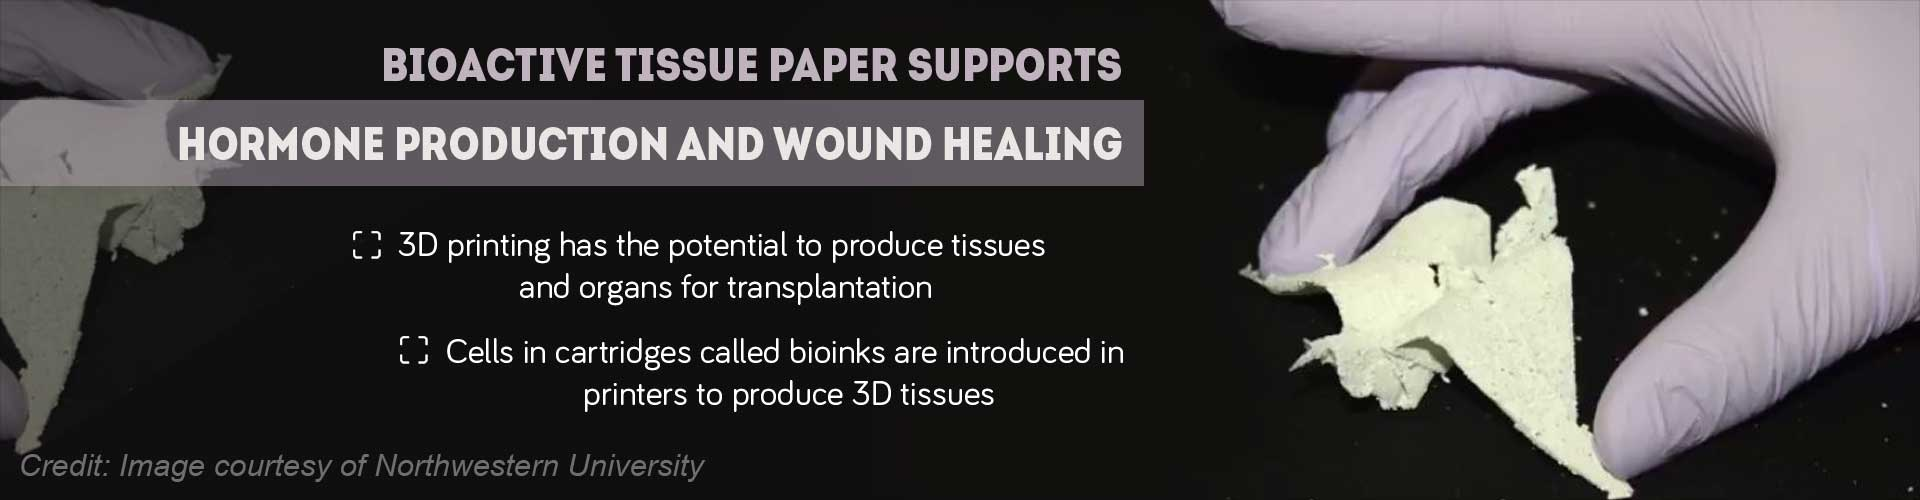 Bioactive tissure paper supports hormone production and wound healing - 3D printing has the potential to produce tissues and organs for transplantation - cells in cartridges called bioinks are introduced in printers to produce 3D tissues